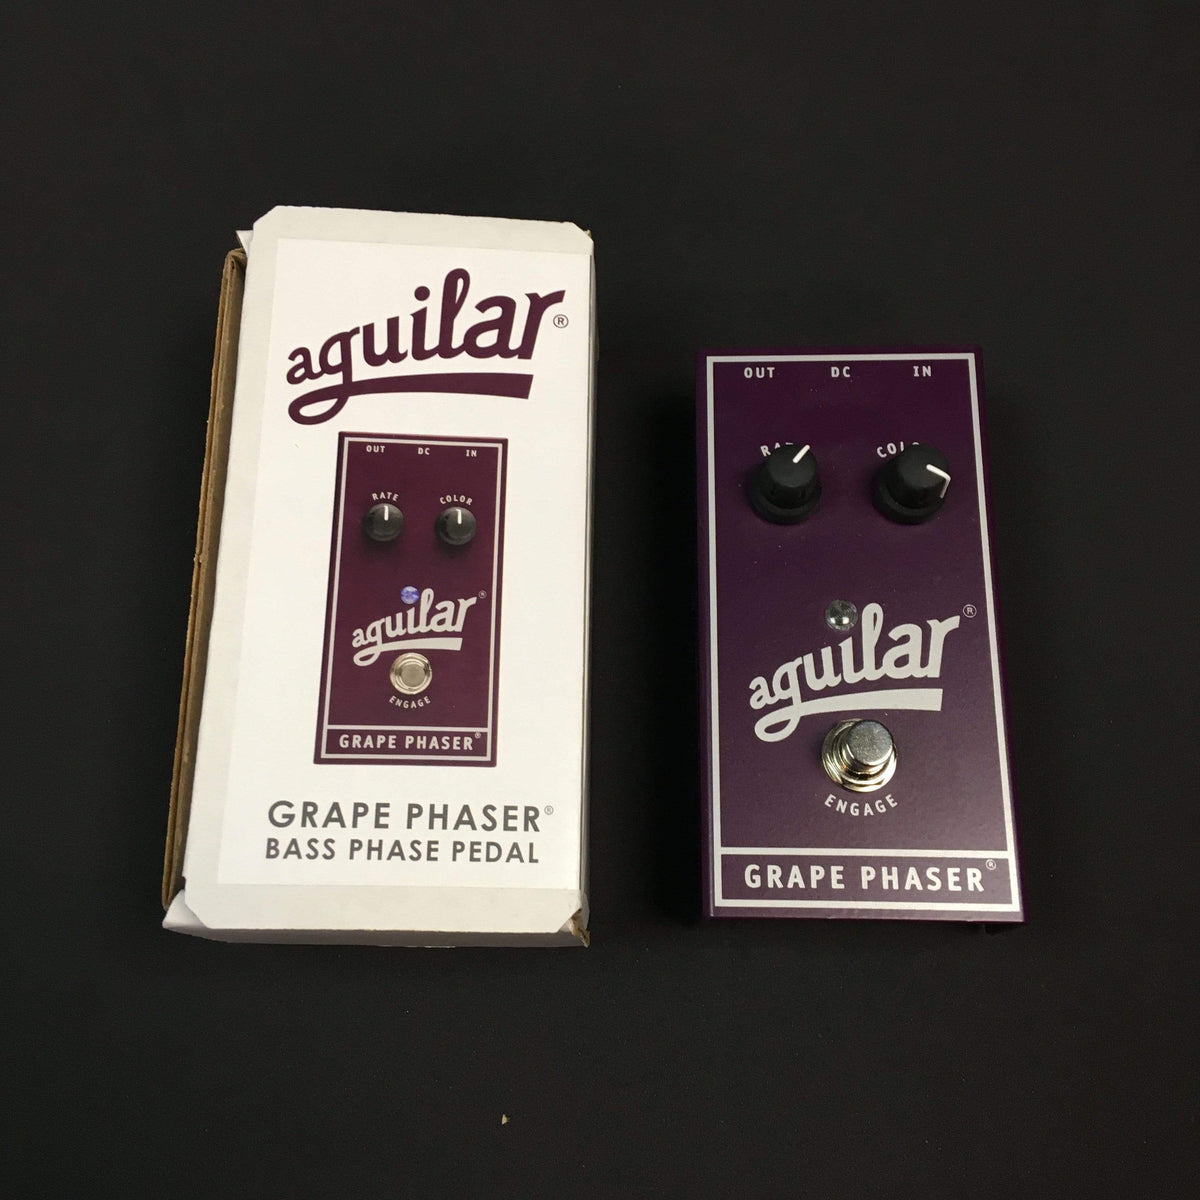 Aguilar Grape Phaser Bass Pedal